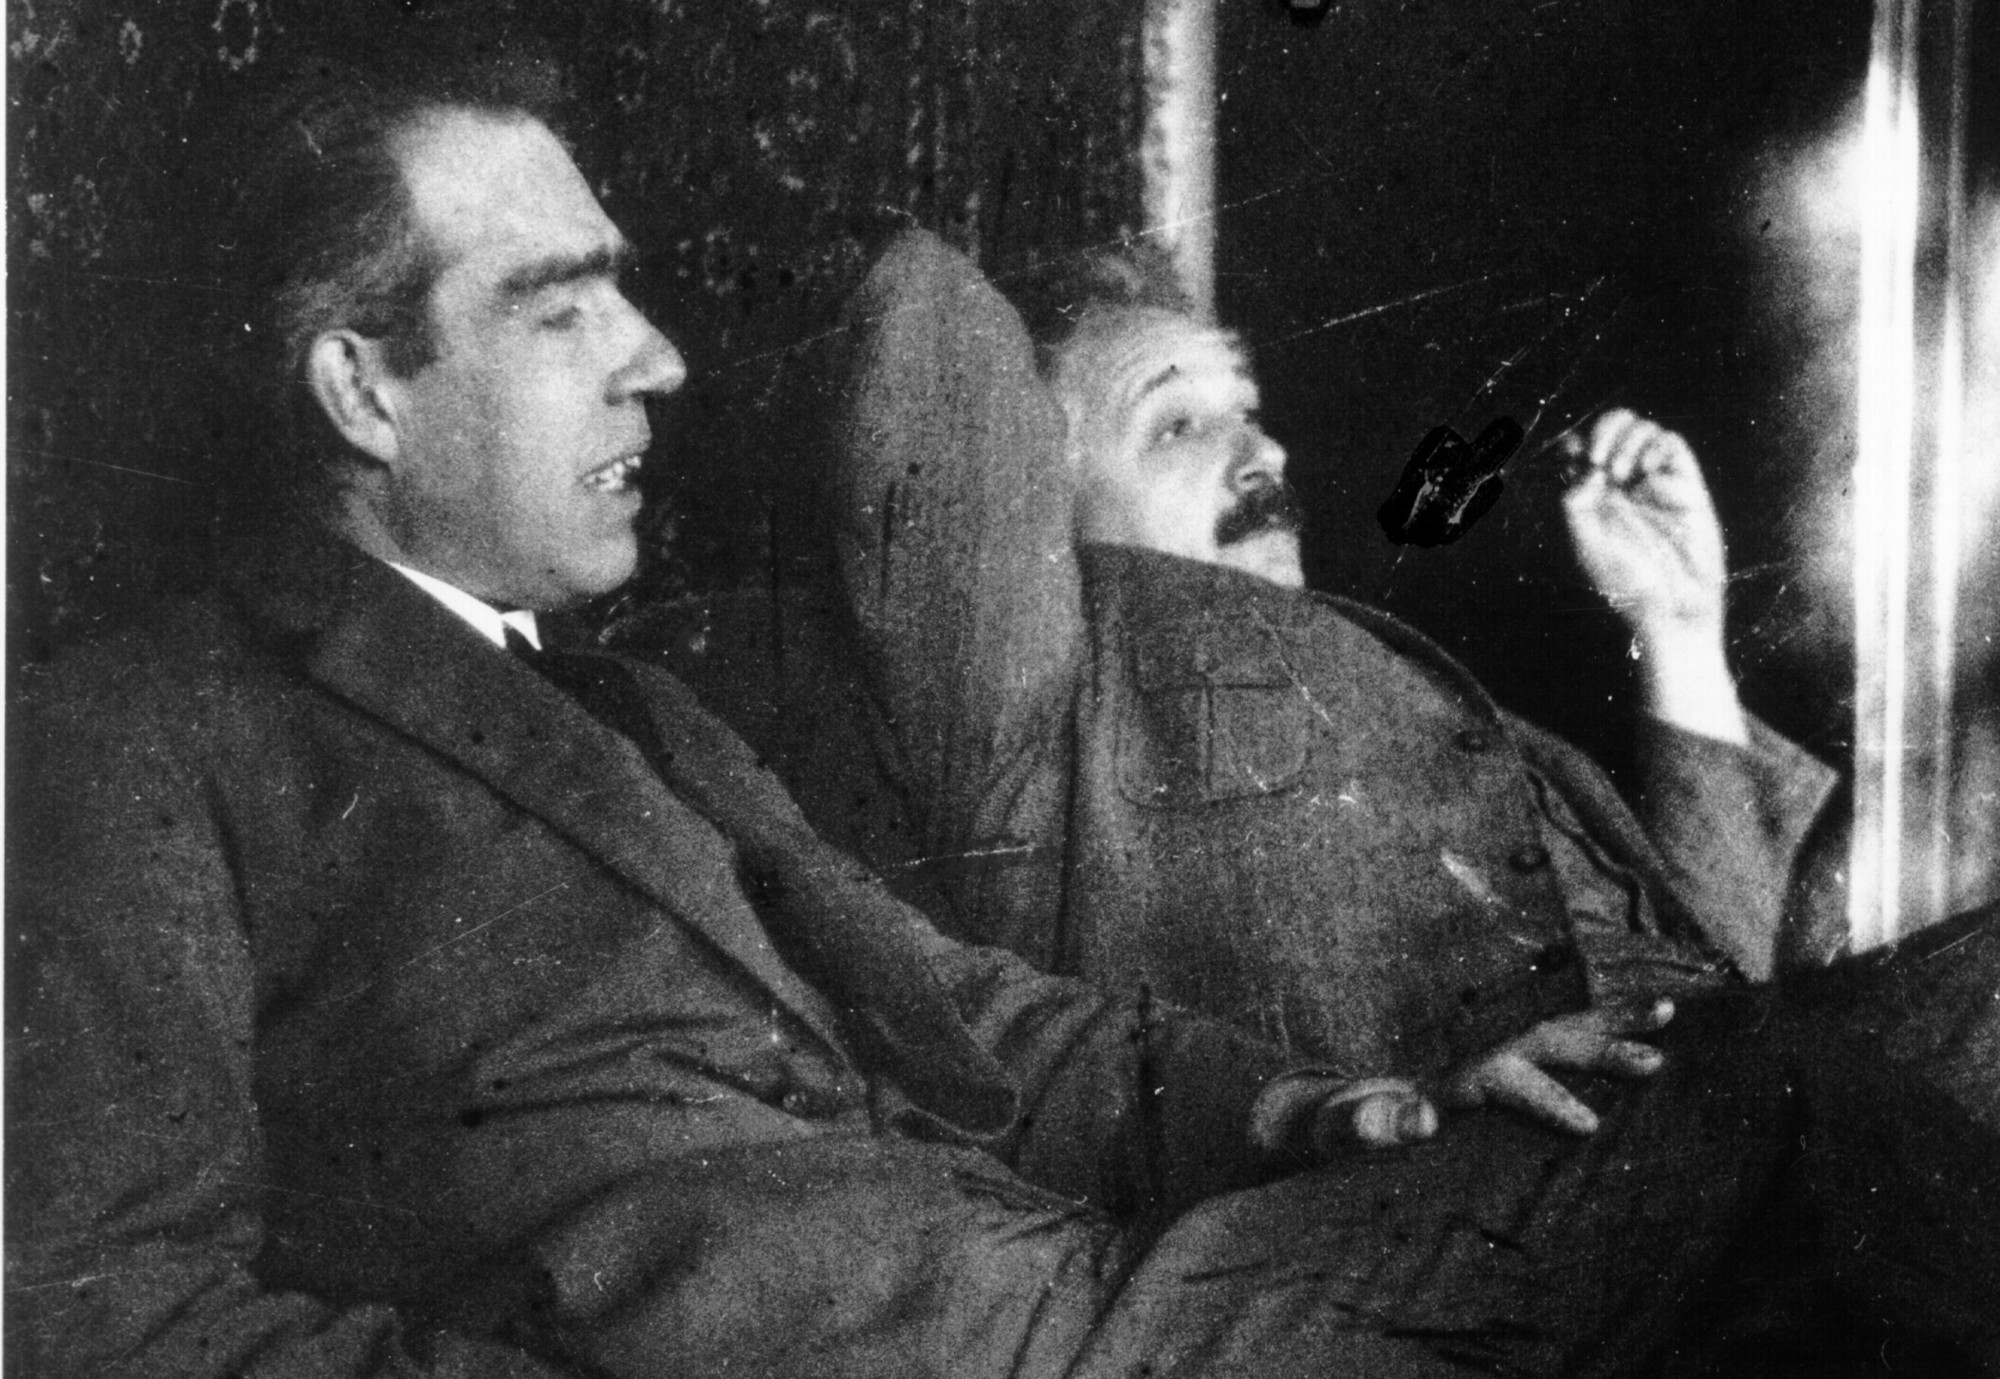 Niels Bohr & Albert Einstein, Foto de Paul Ehrenfest (1925), Cortesía AIP Emilio Segre Visual Archives